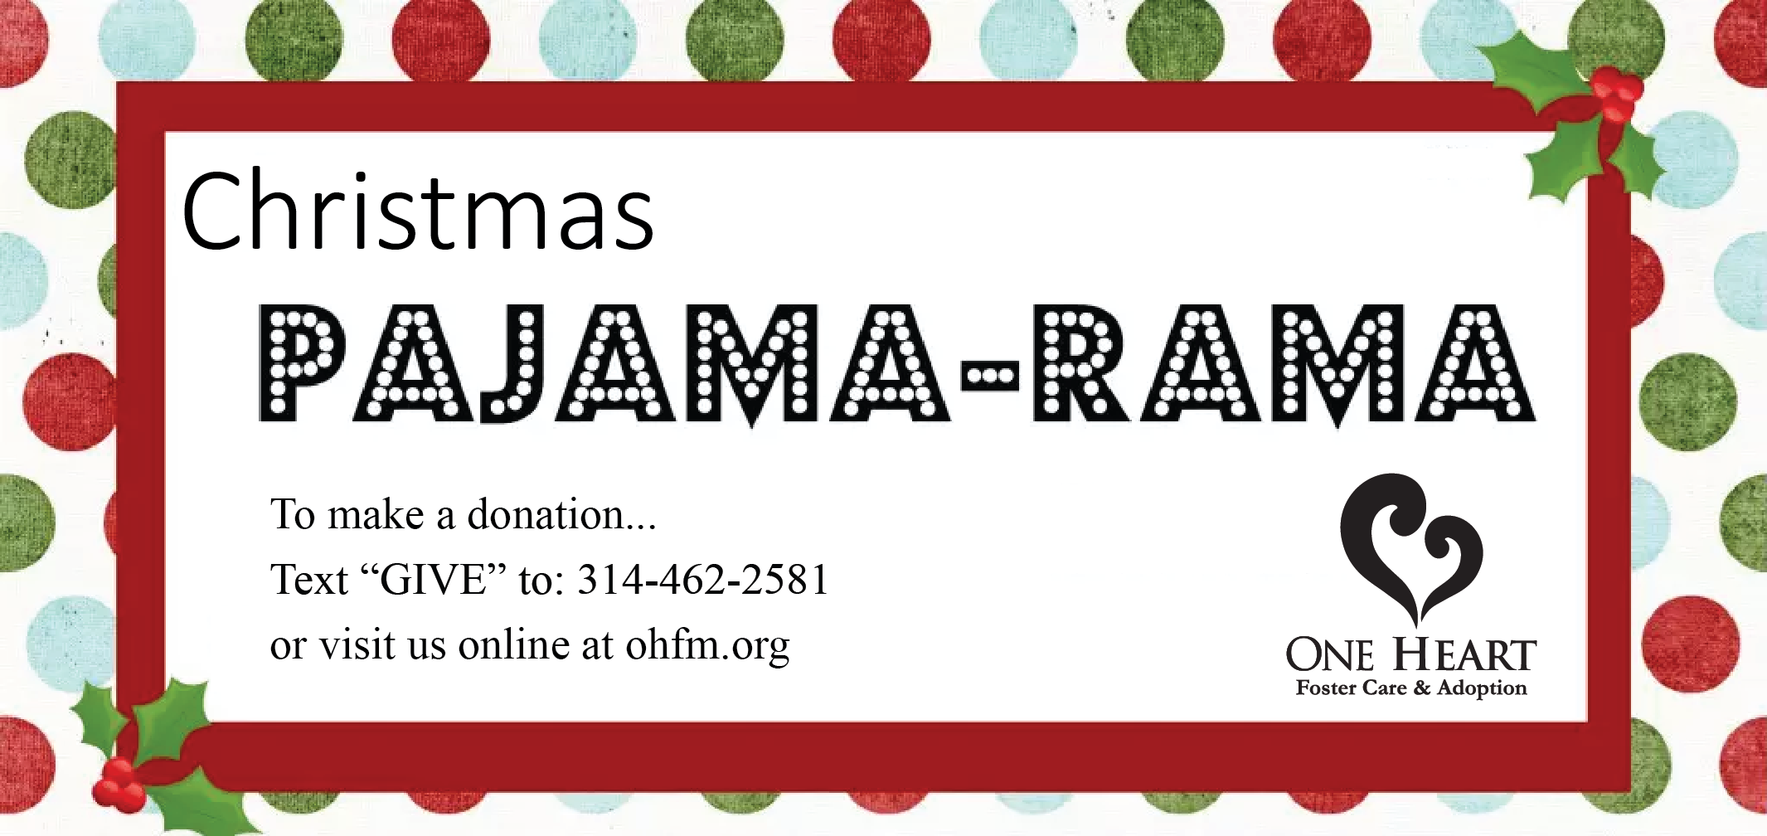 Give today to bless children impacted by foster care for Christmas image